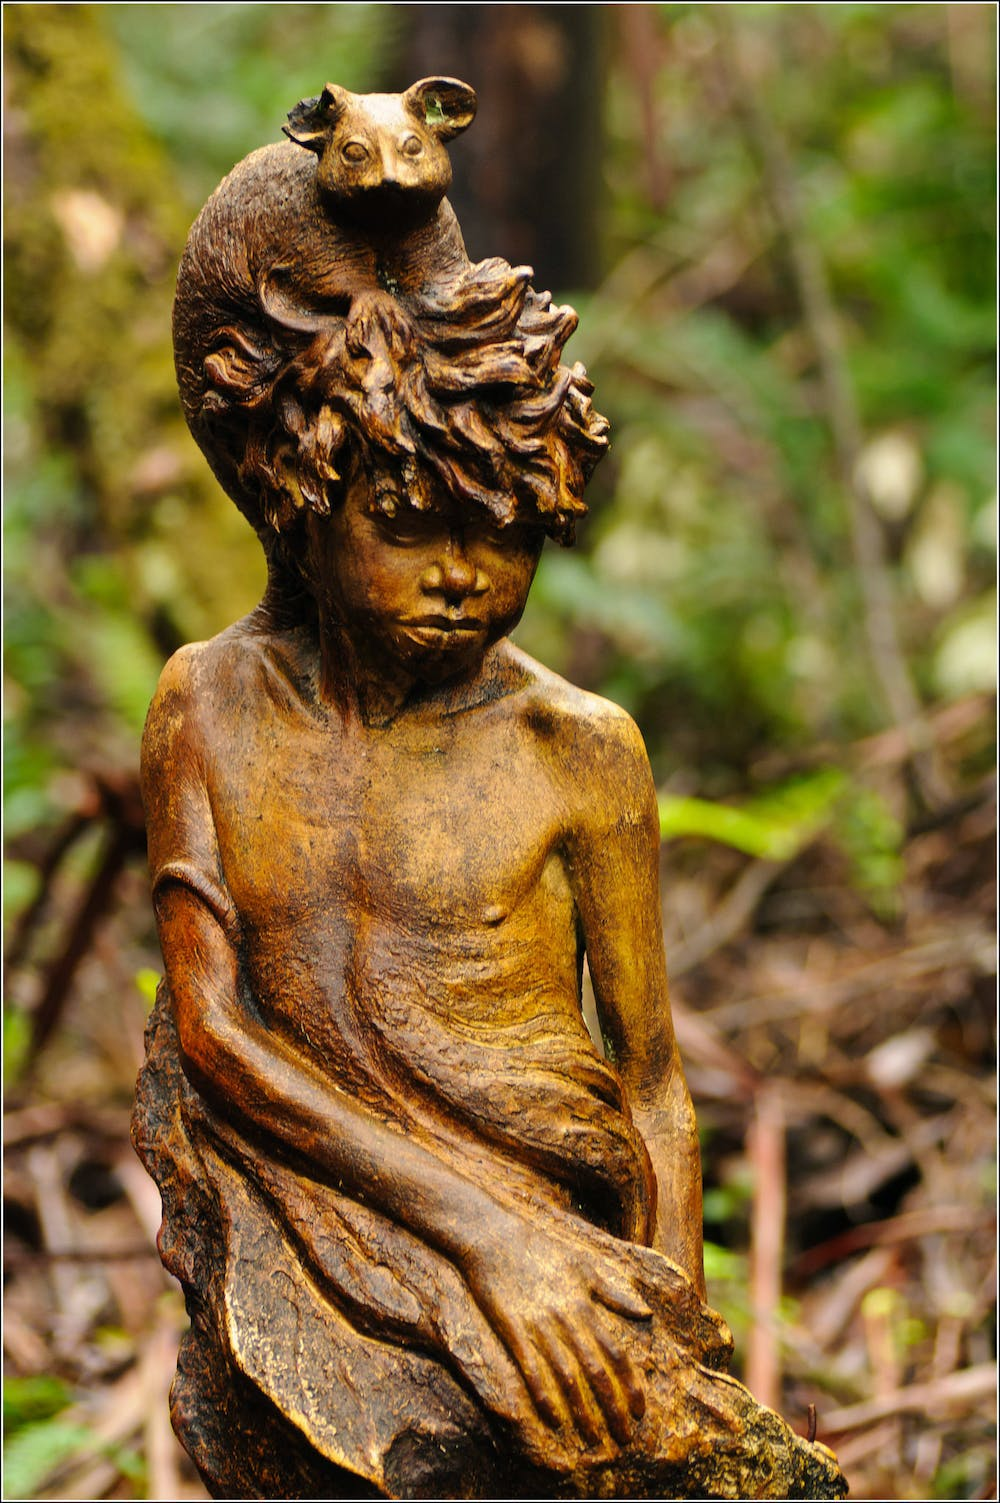 Essay On Photosynthesis Gushy Mawkishness A Statue Of A Child At The Sanctuary Rreeveflickr Cc  By Locavore Synthesis Essay also Good Essay Topics For High School Friday Essay William Ricketts Sanctuary Is A Racist Anachronism But  Essay On Modern Science